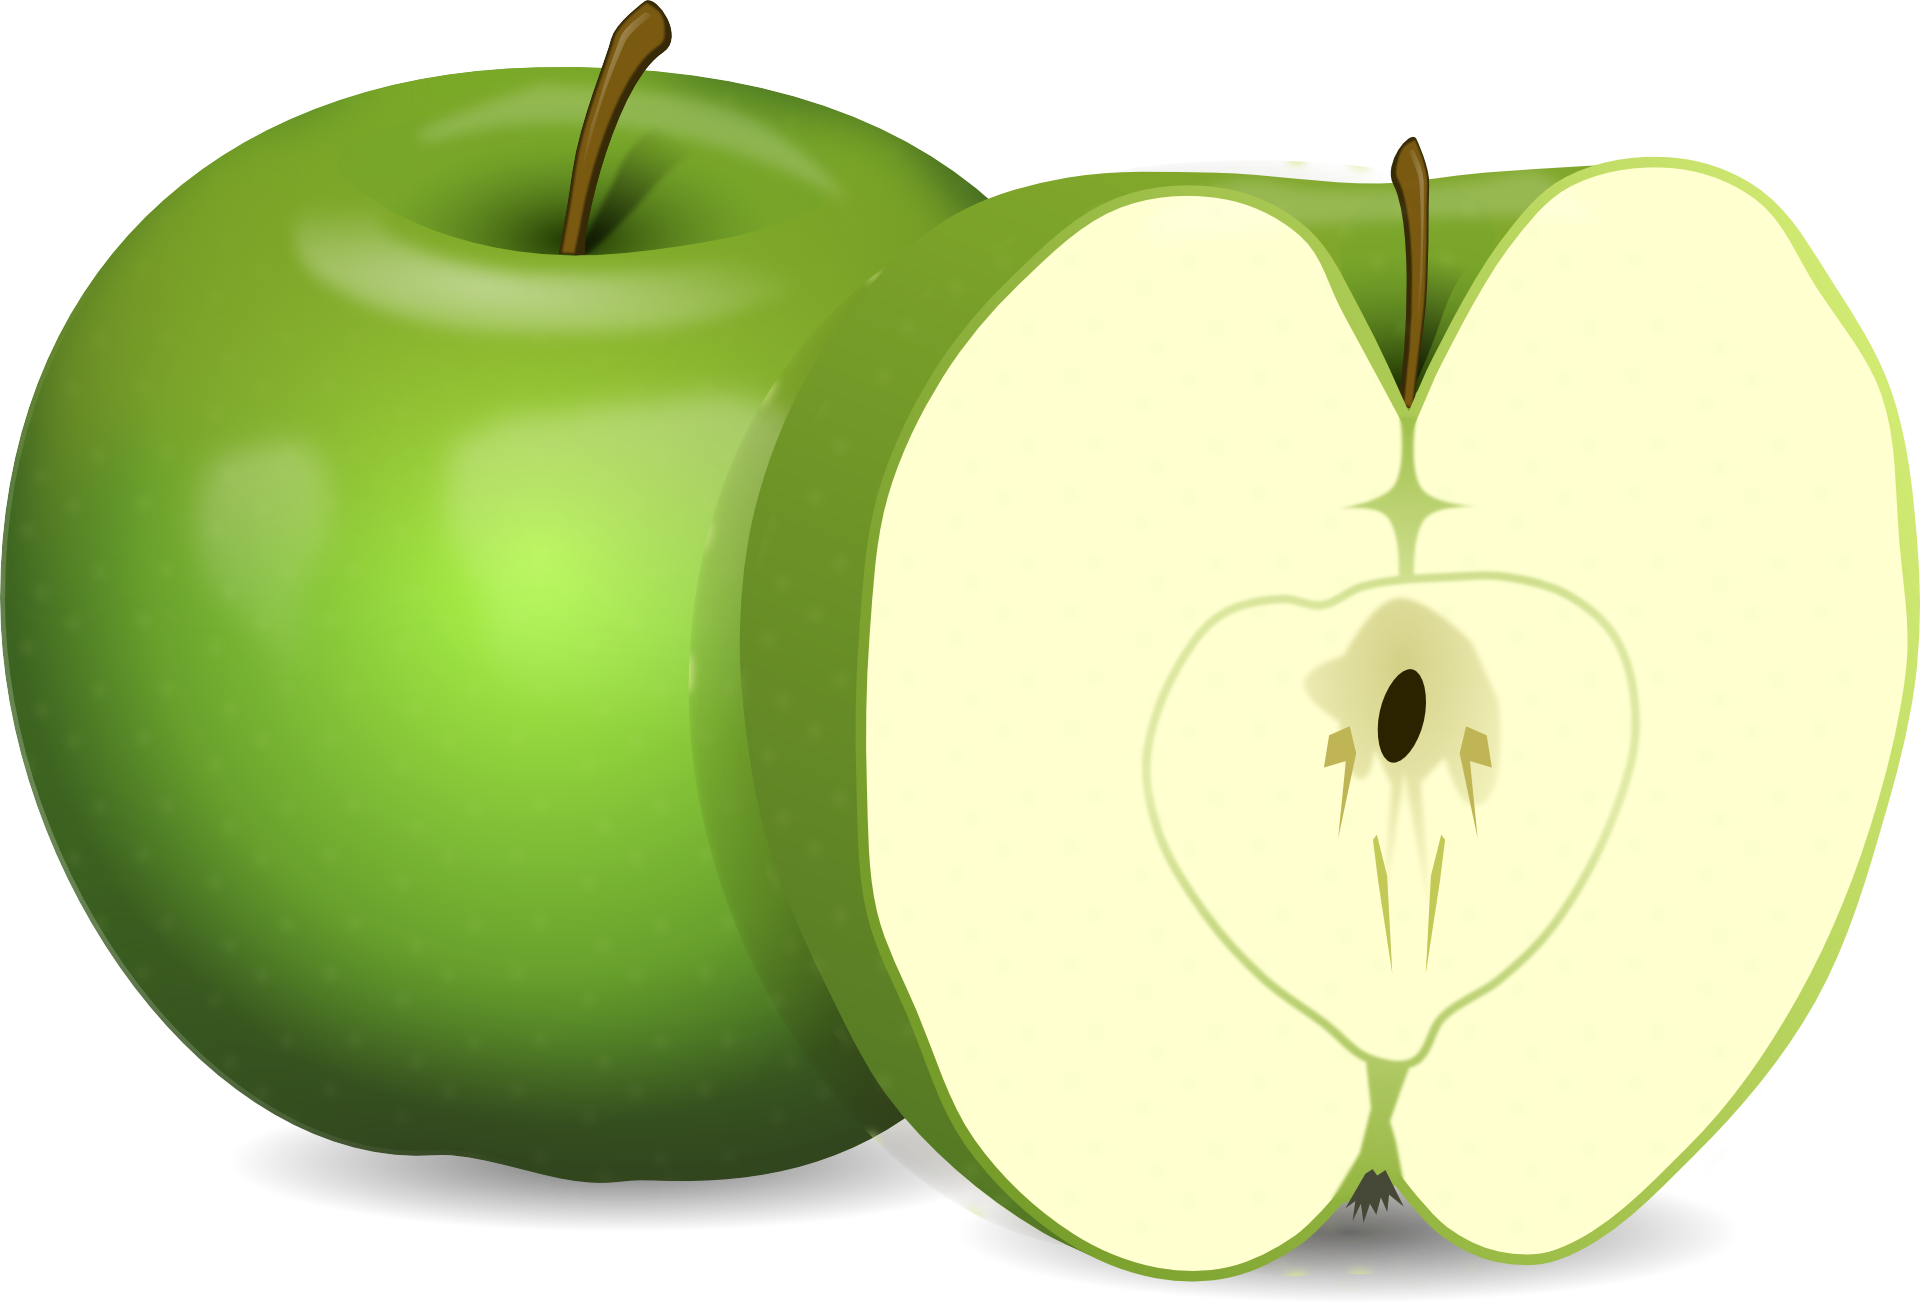 Apples banana sexual symbal on white stock photo